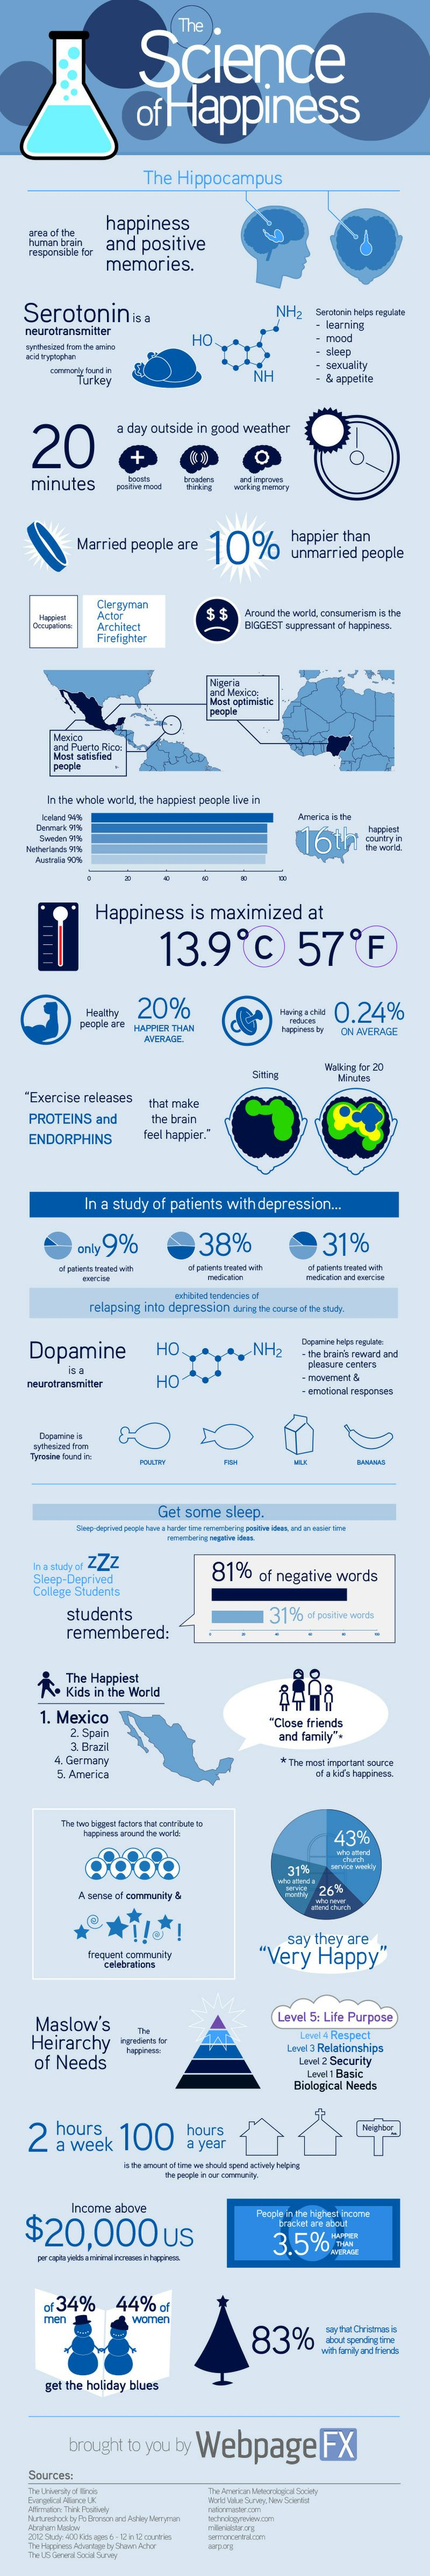 The-Science-of-Happiness-Infographic.jpg